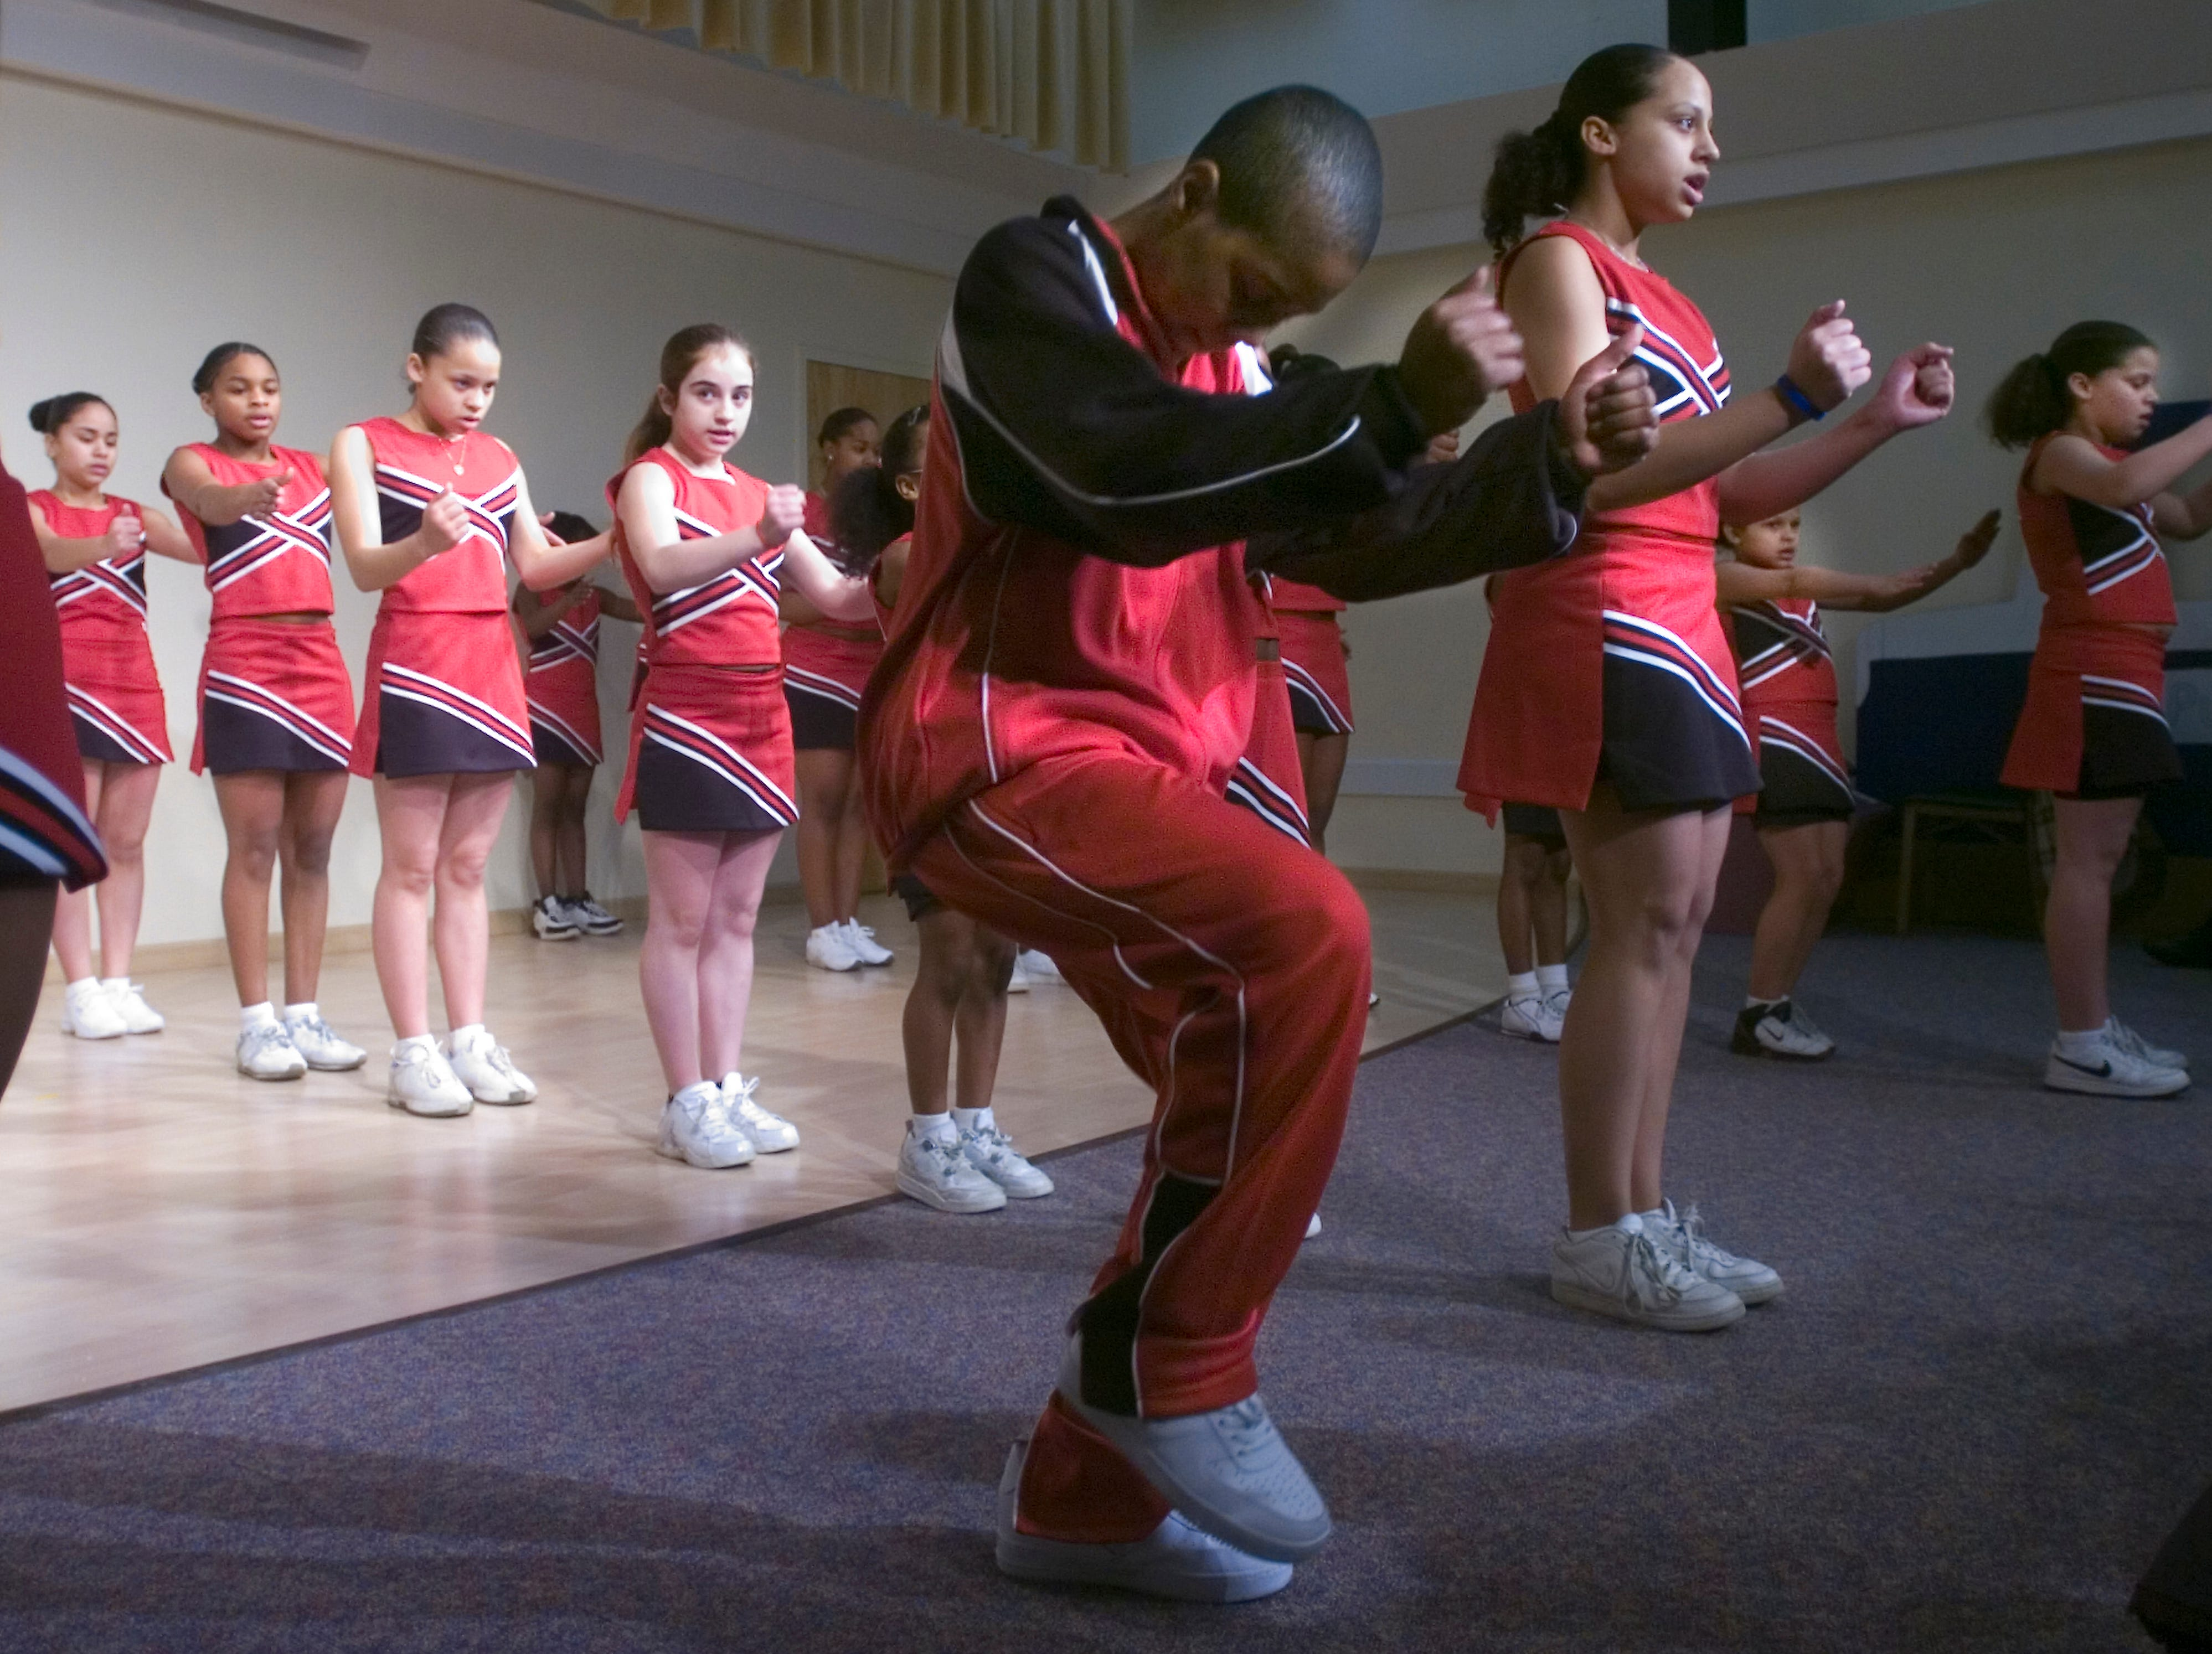 2007: Desmond Fernandez, 12, The Unexpected dance group's lone boy, starts a song as the rest of the group waits.